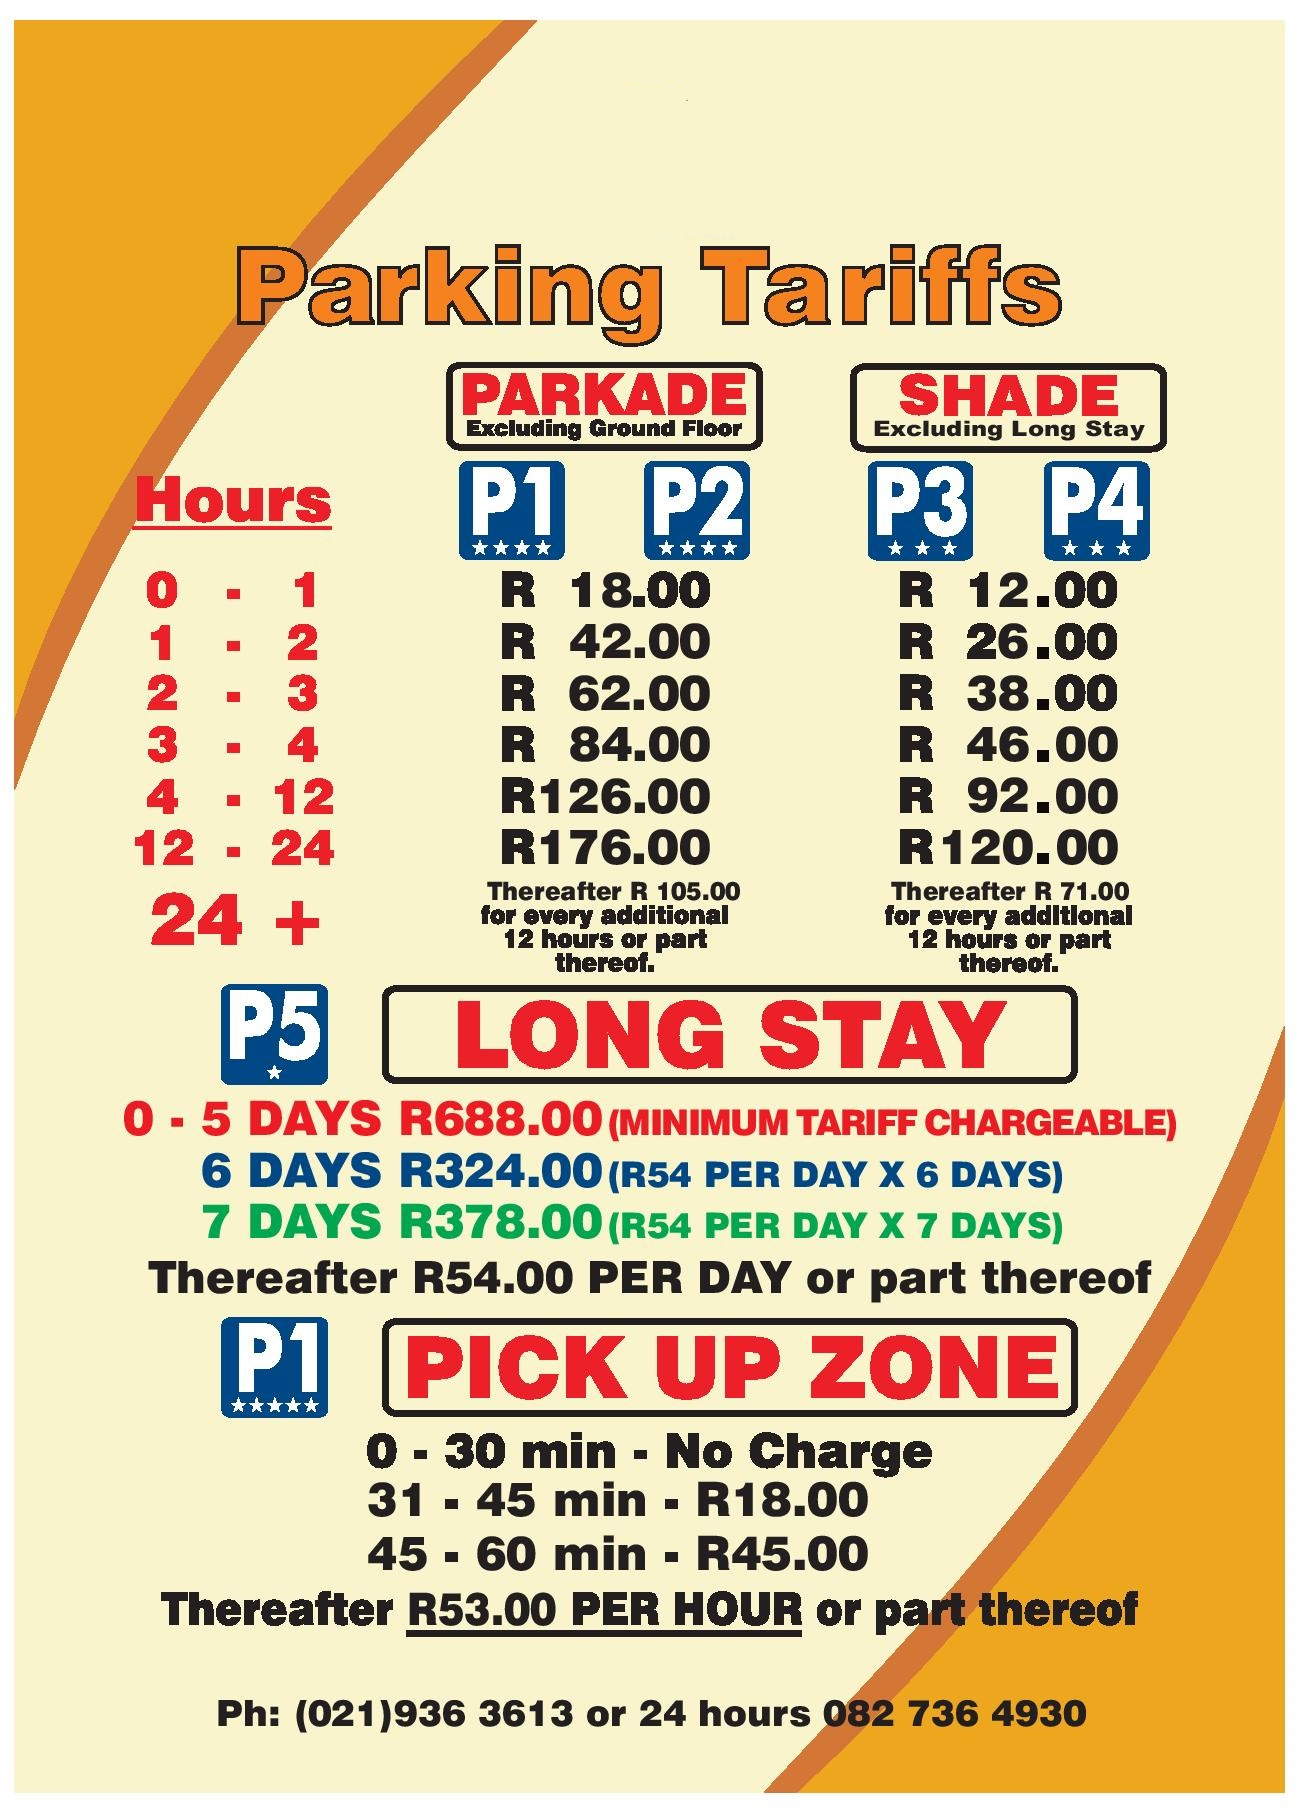 P1 Parkade Normal And Pick Up Zone